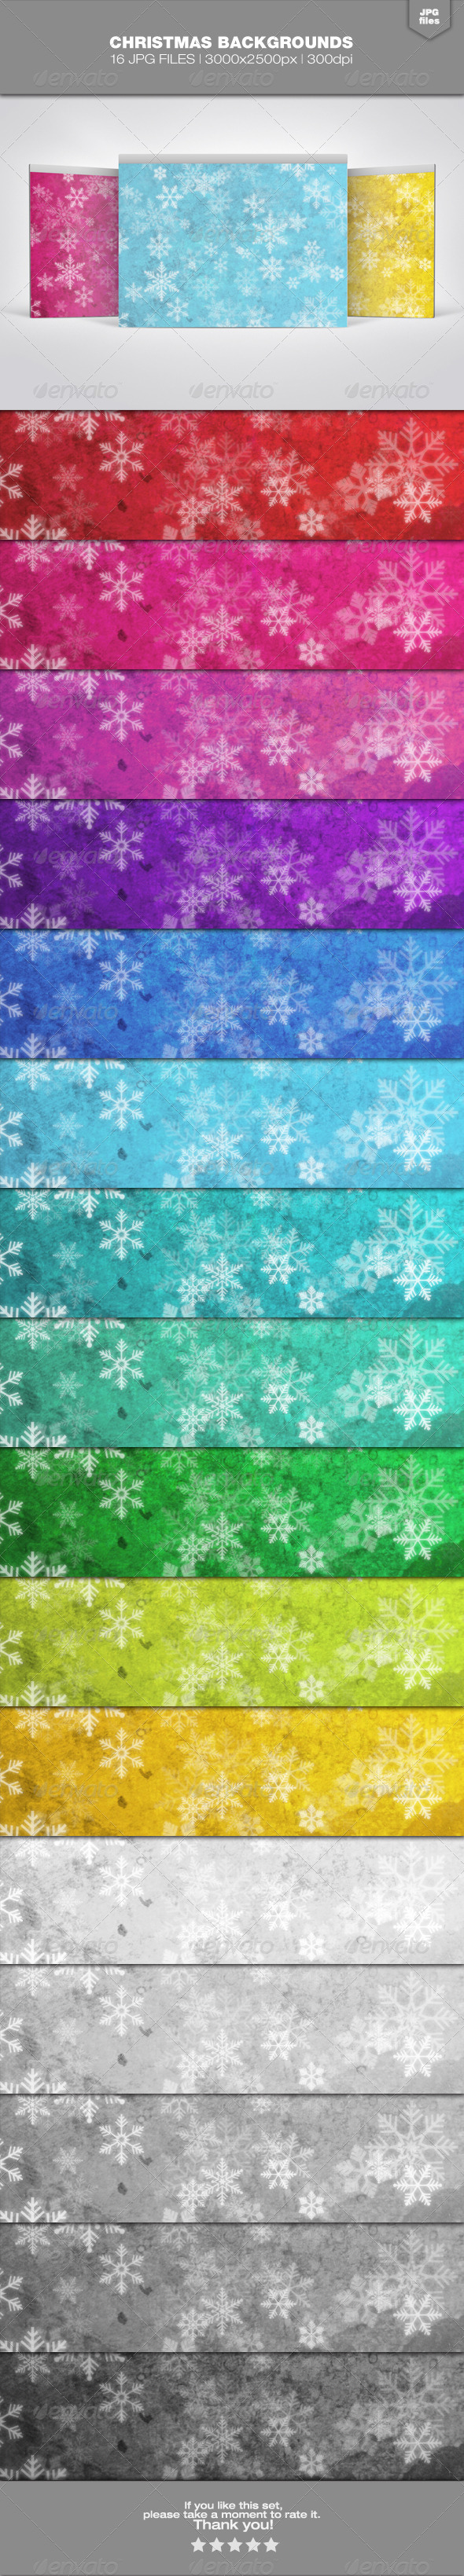 Christmas Backgrounds Set 1 - Backgrounds Graphics